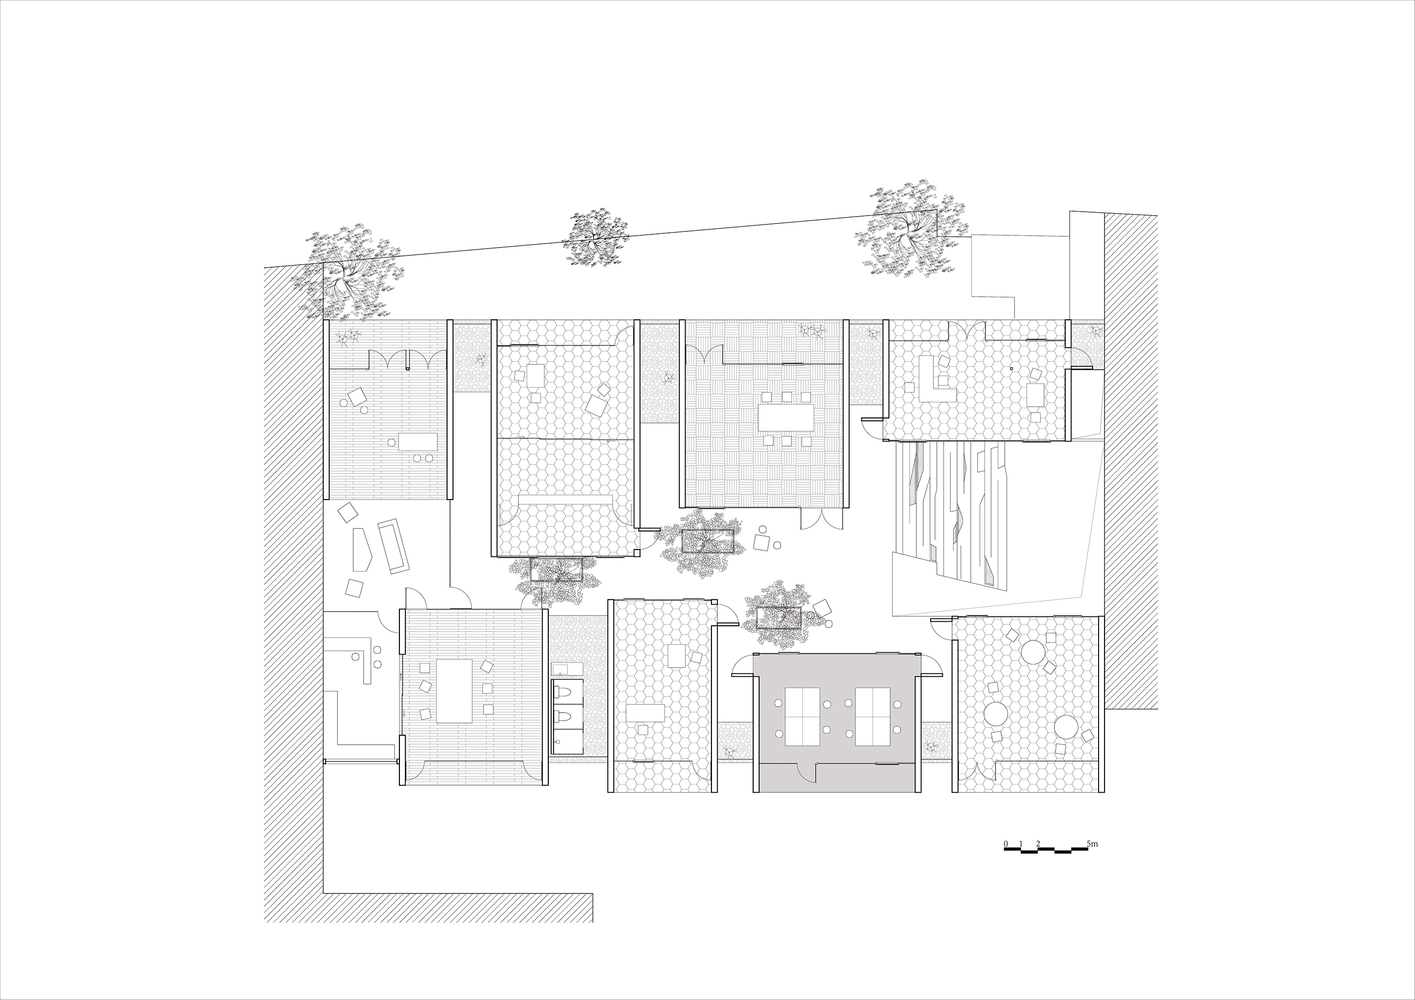 Work Studio In A Plant House,Upper Floor Plan